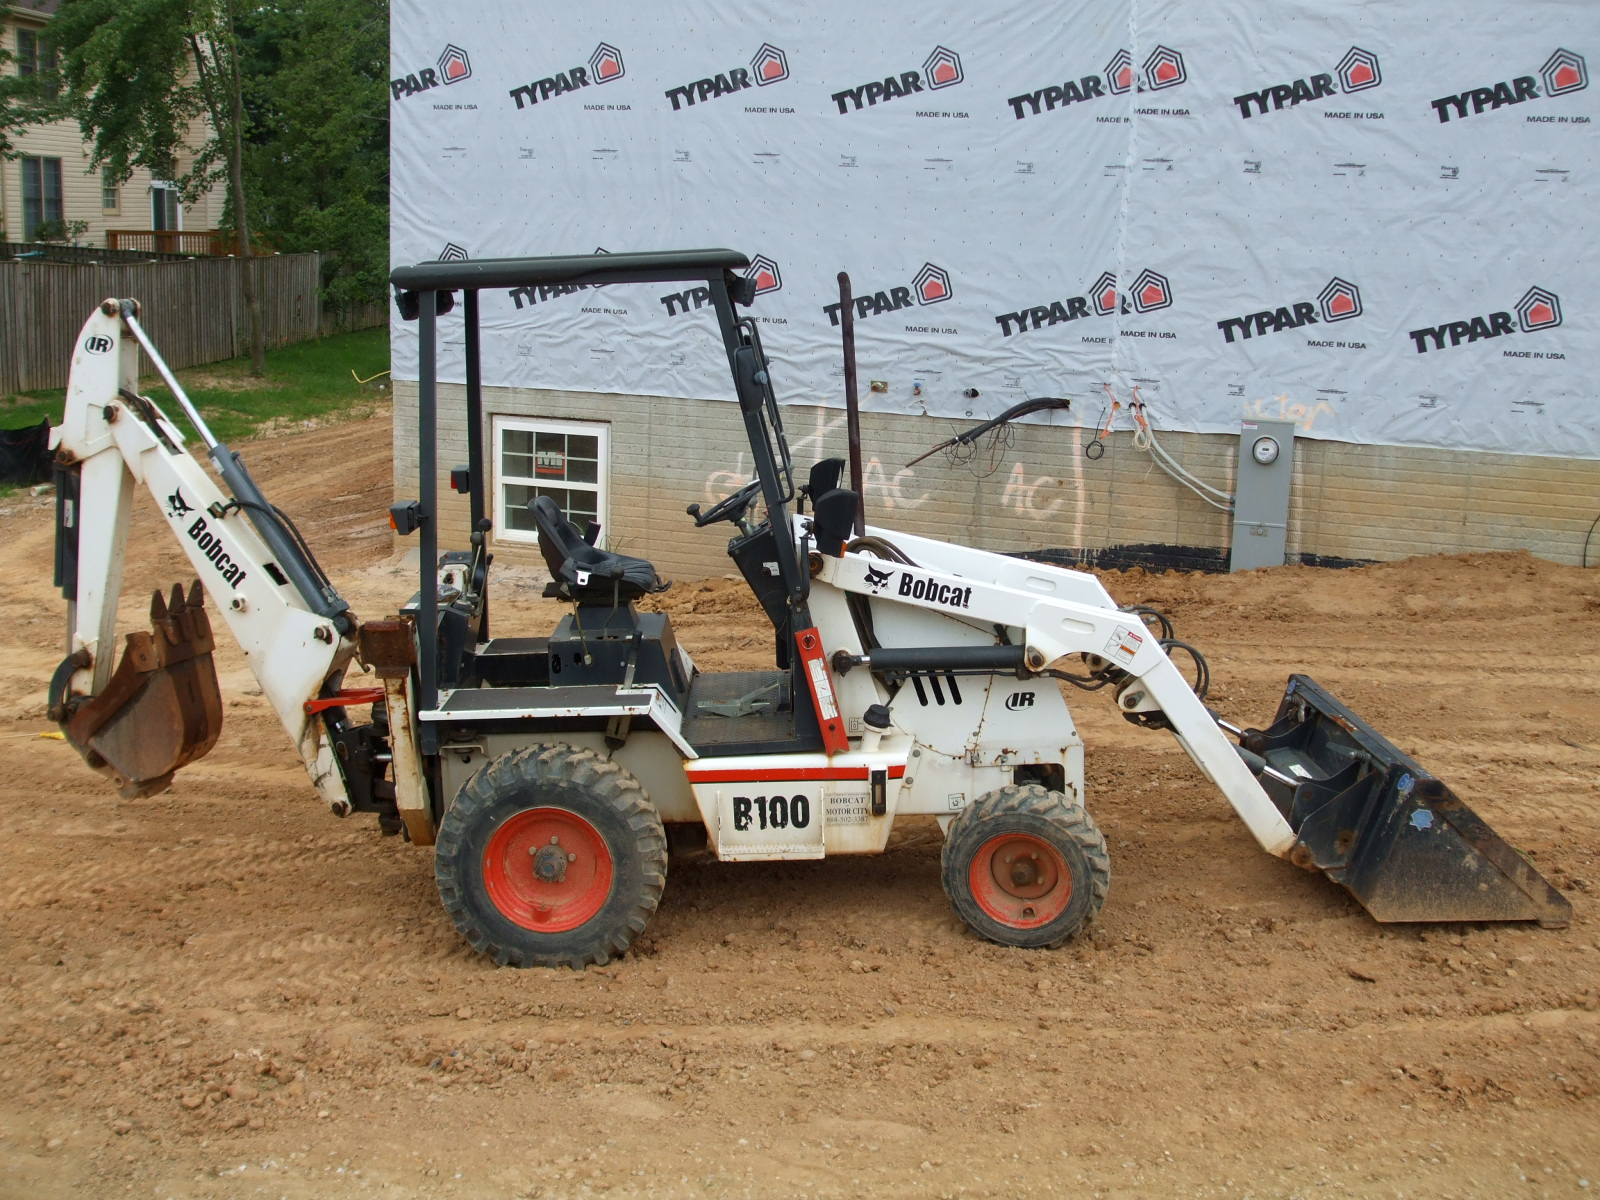 remote control bobcat excavators with Adcconstructionequipment on Page 29 additionally Adcconstructionequipment additionally Photos Attachments Roundup 2015 Master The Art Of Multi Tasking With 50 Tools together with ERTL46626 furthermore Bergmann 4010 Cw Crane.